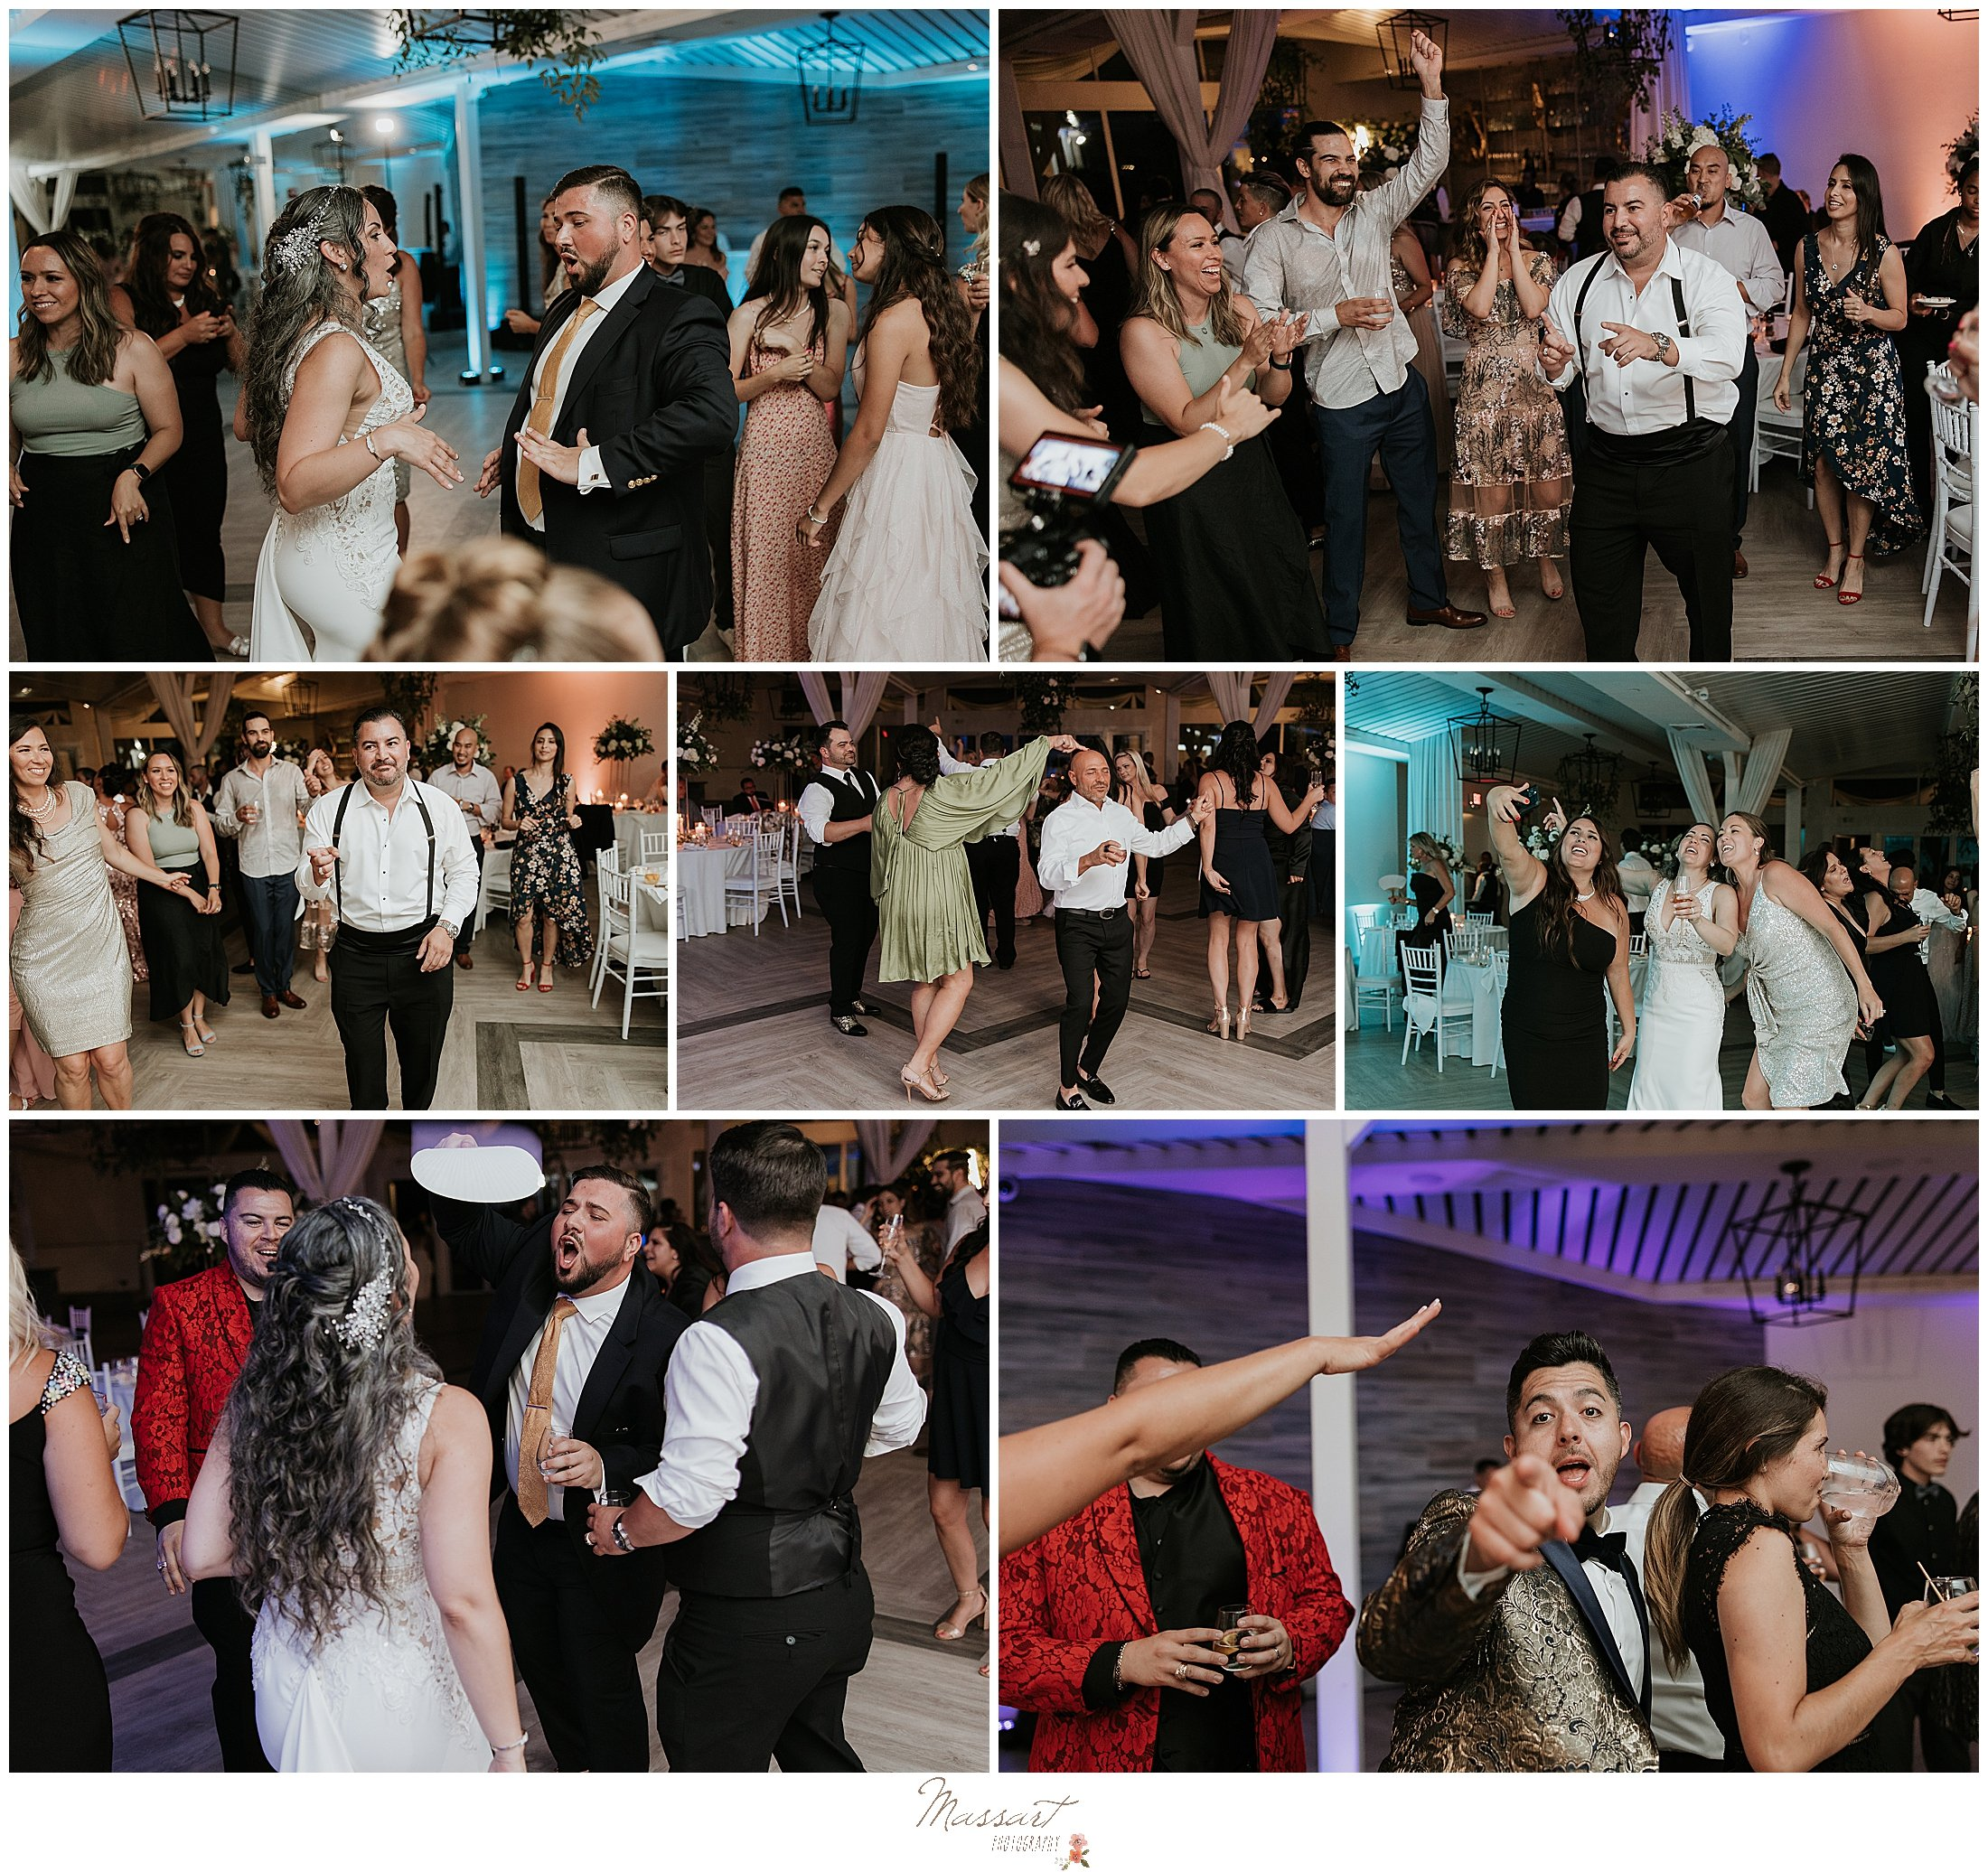 guests dance during Rhode Island wedding day